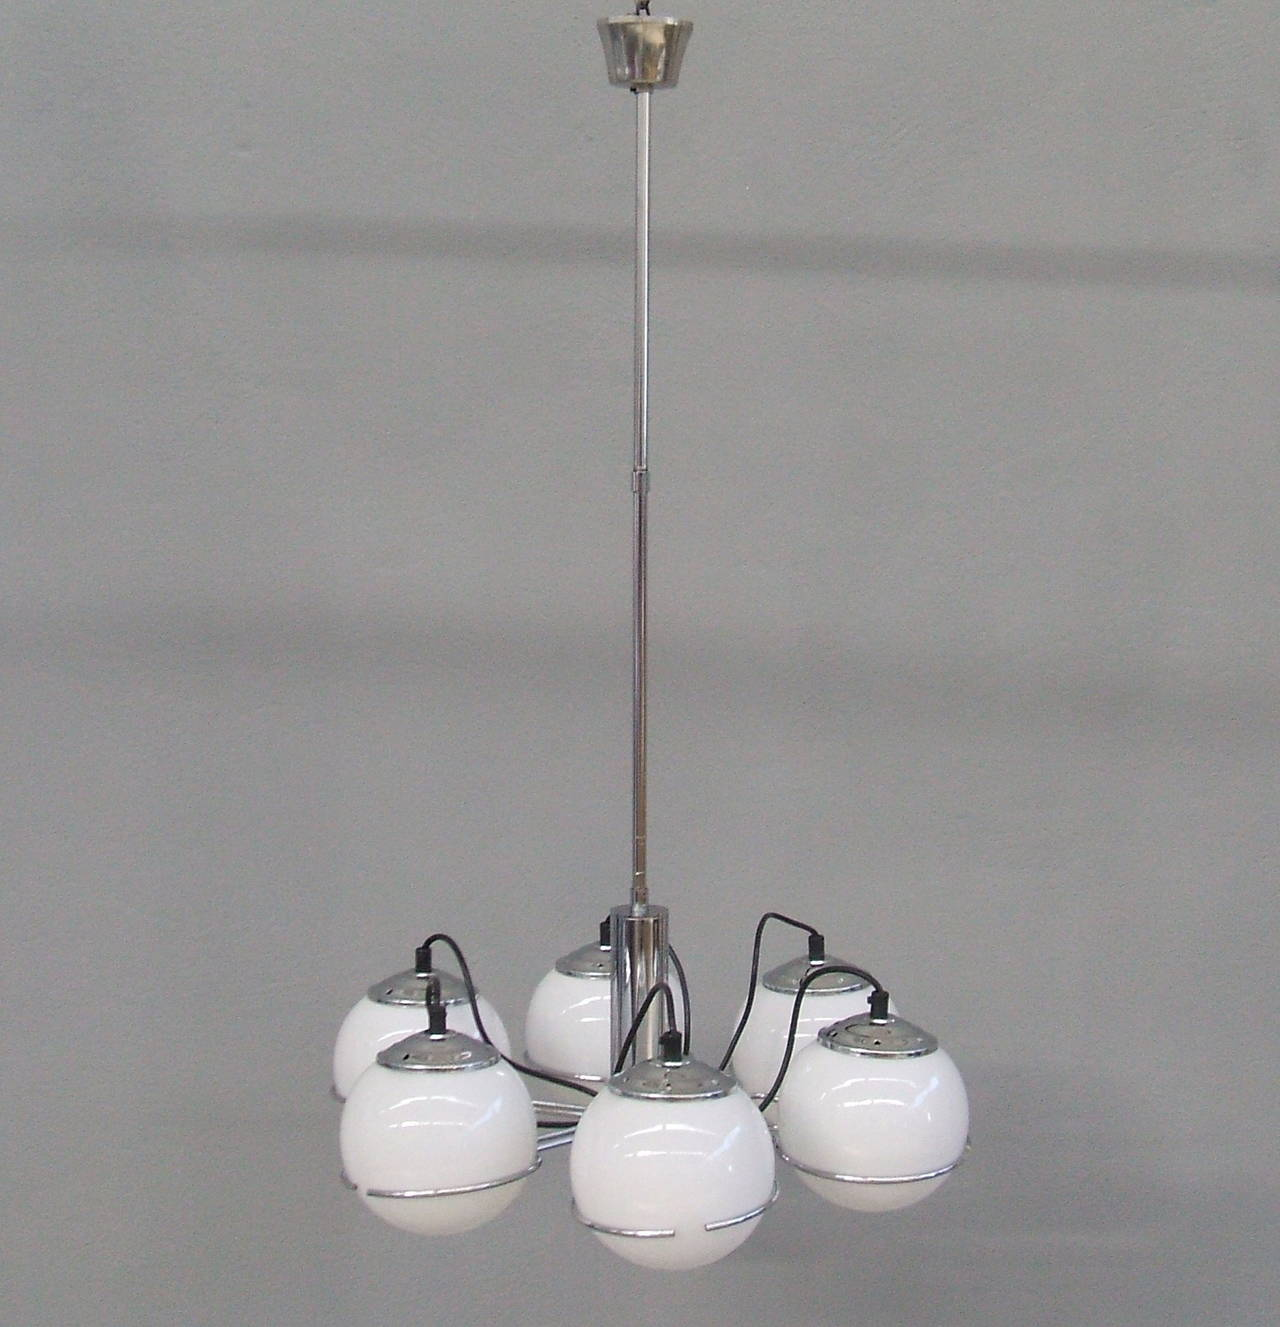 Midcentury Italian Chandelier in the Style of Gino Sarfatti For Sale 1